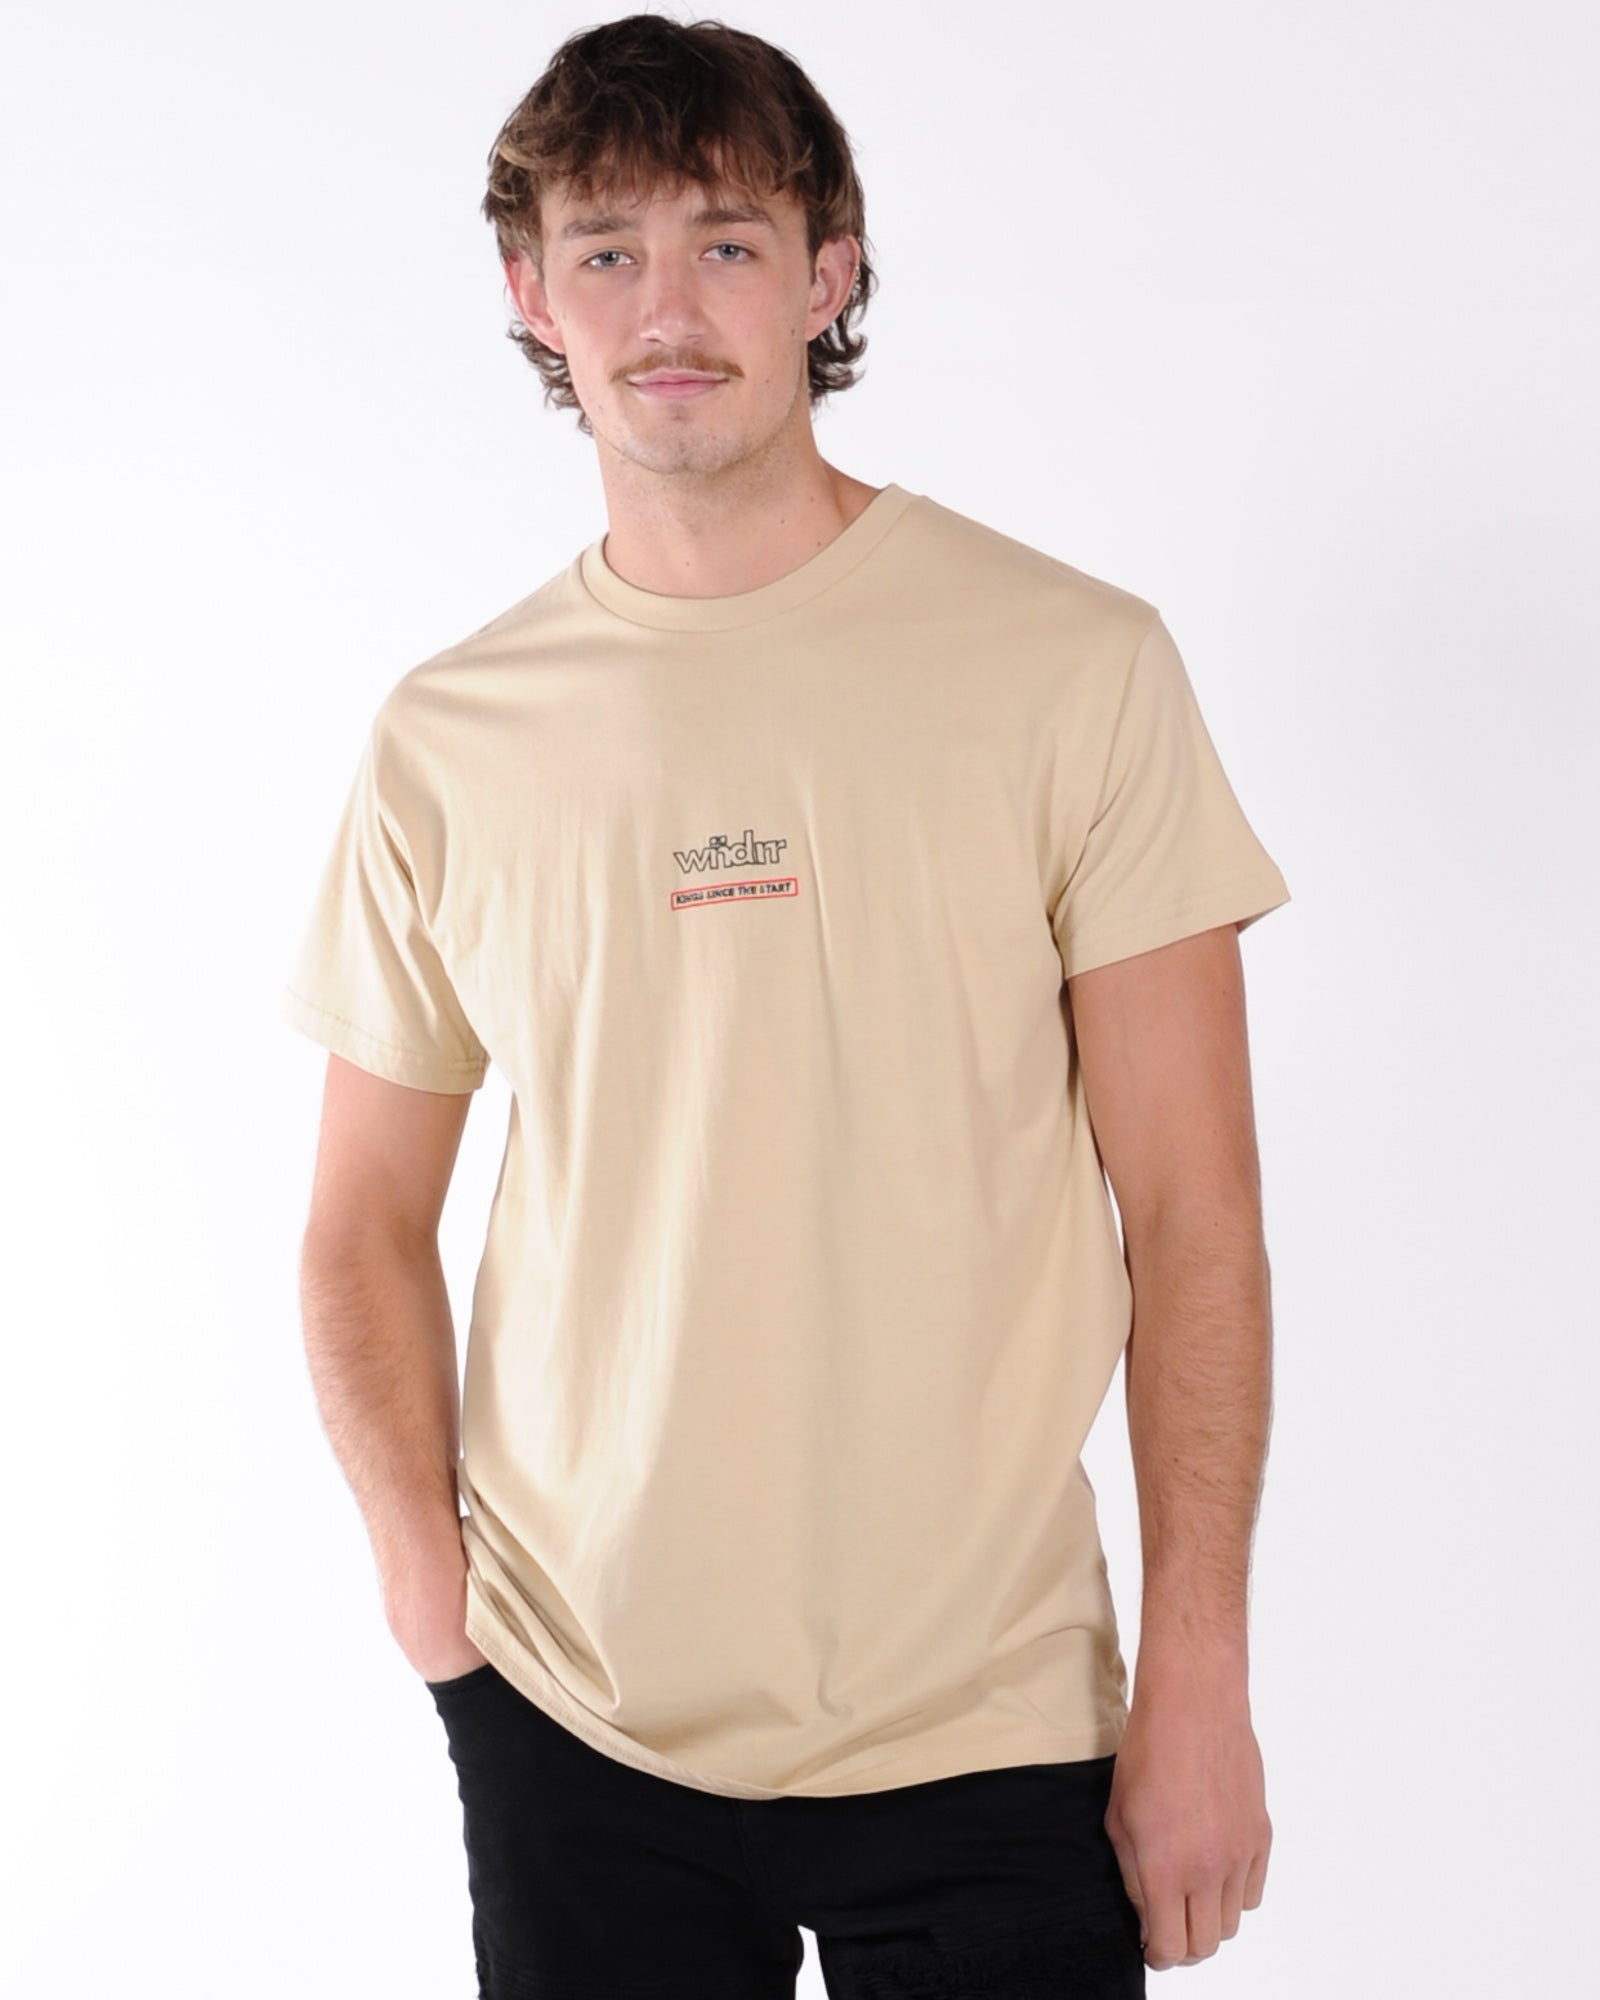 Wndrr Blaze Custom Fit Tee - Tan